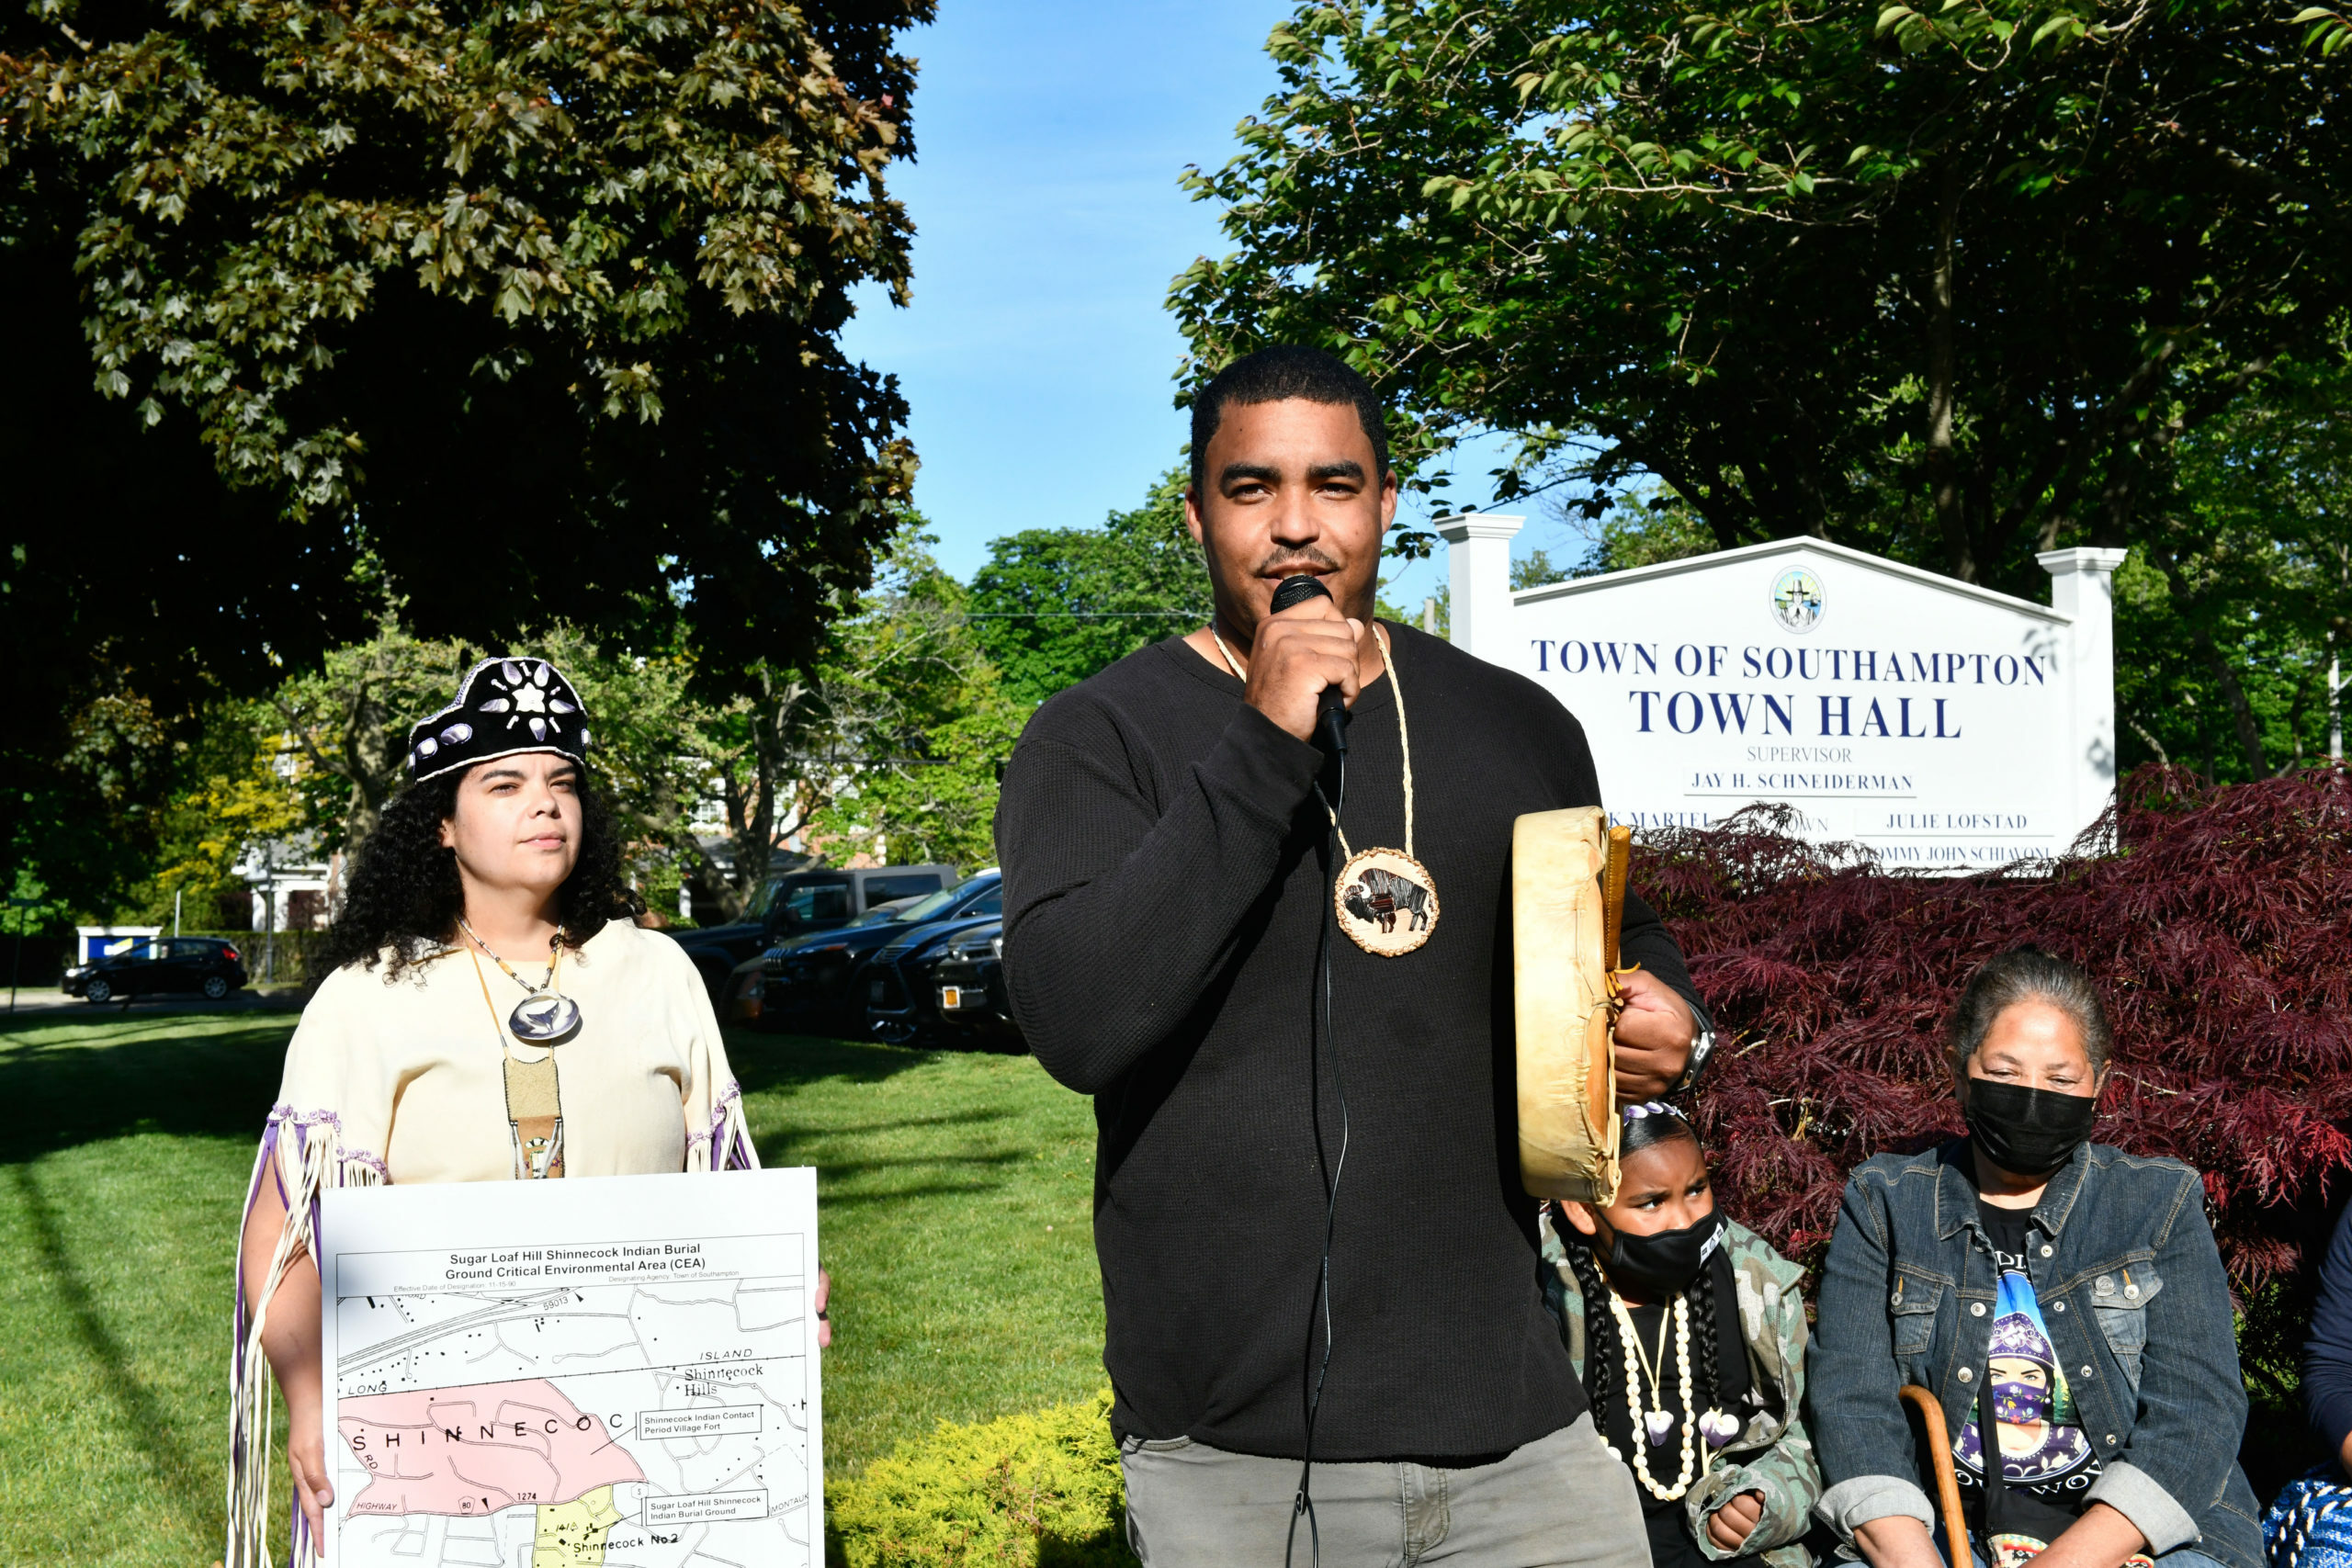 Tela Troge, Shane Week and Rebecca Genia at a rally in front of Southampton Town Hall last year.  DANA SHAW